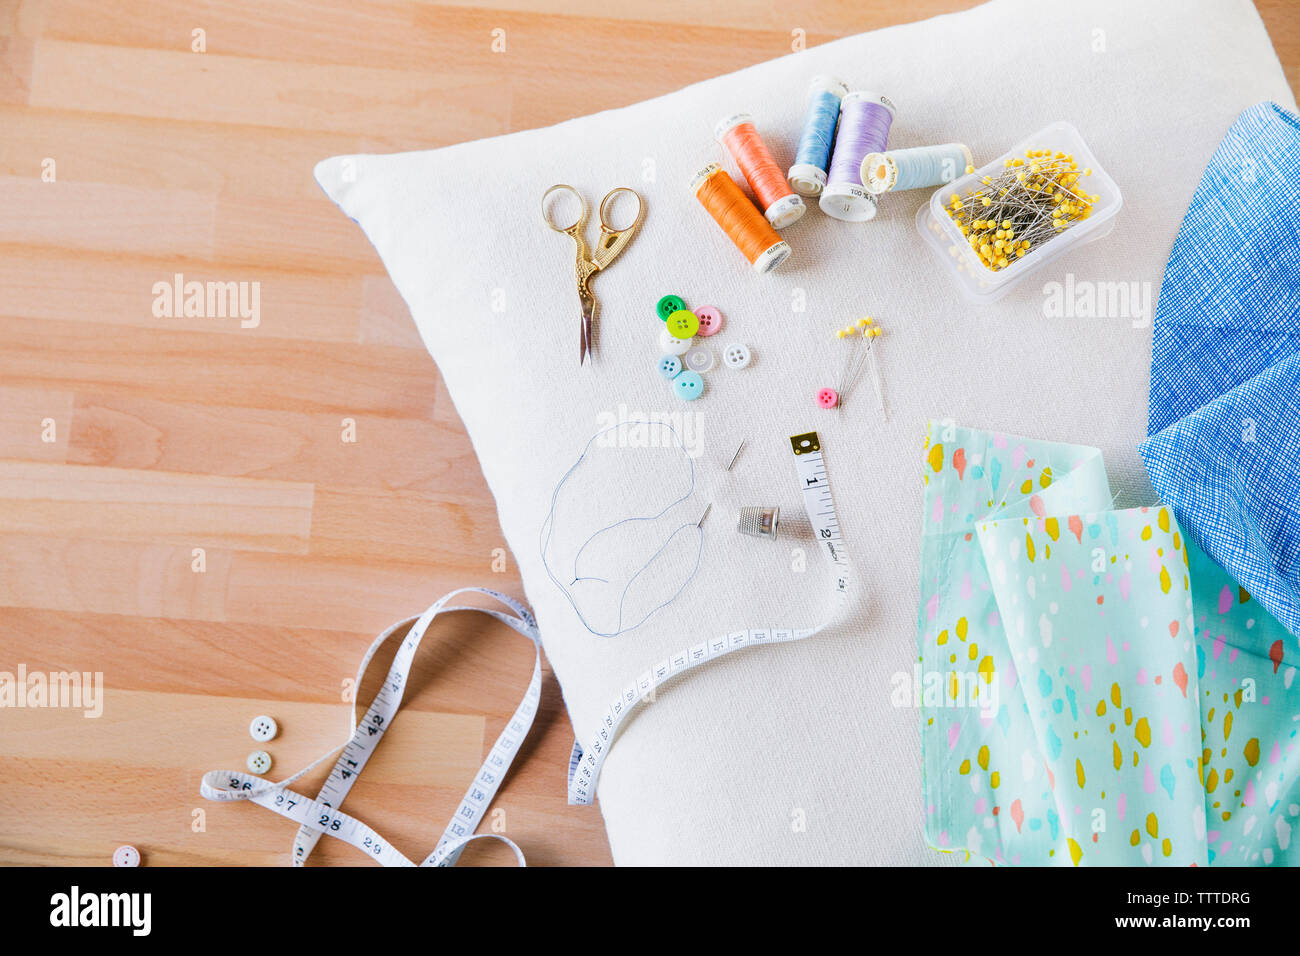 Overhead view of sewing item on pillow at table - Stock Image